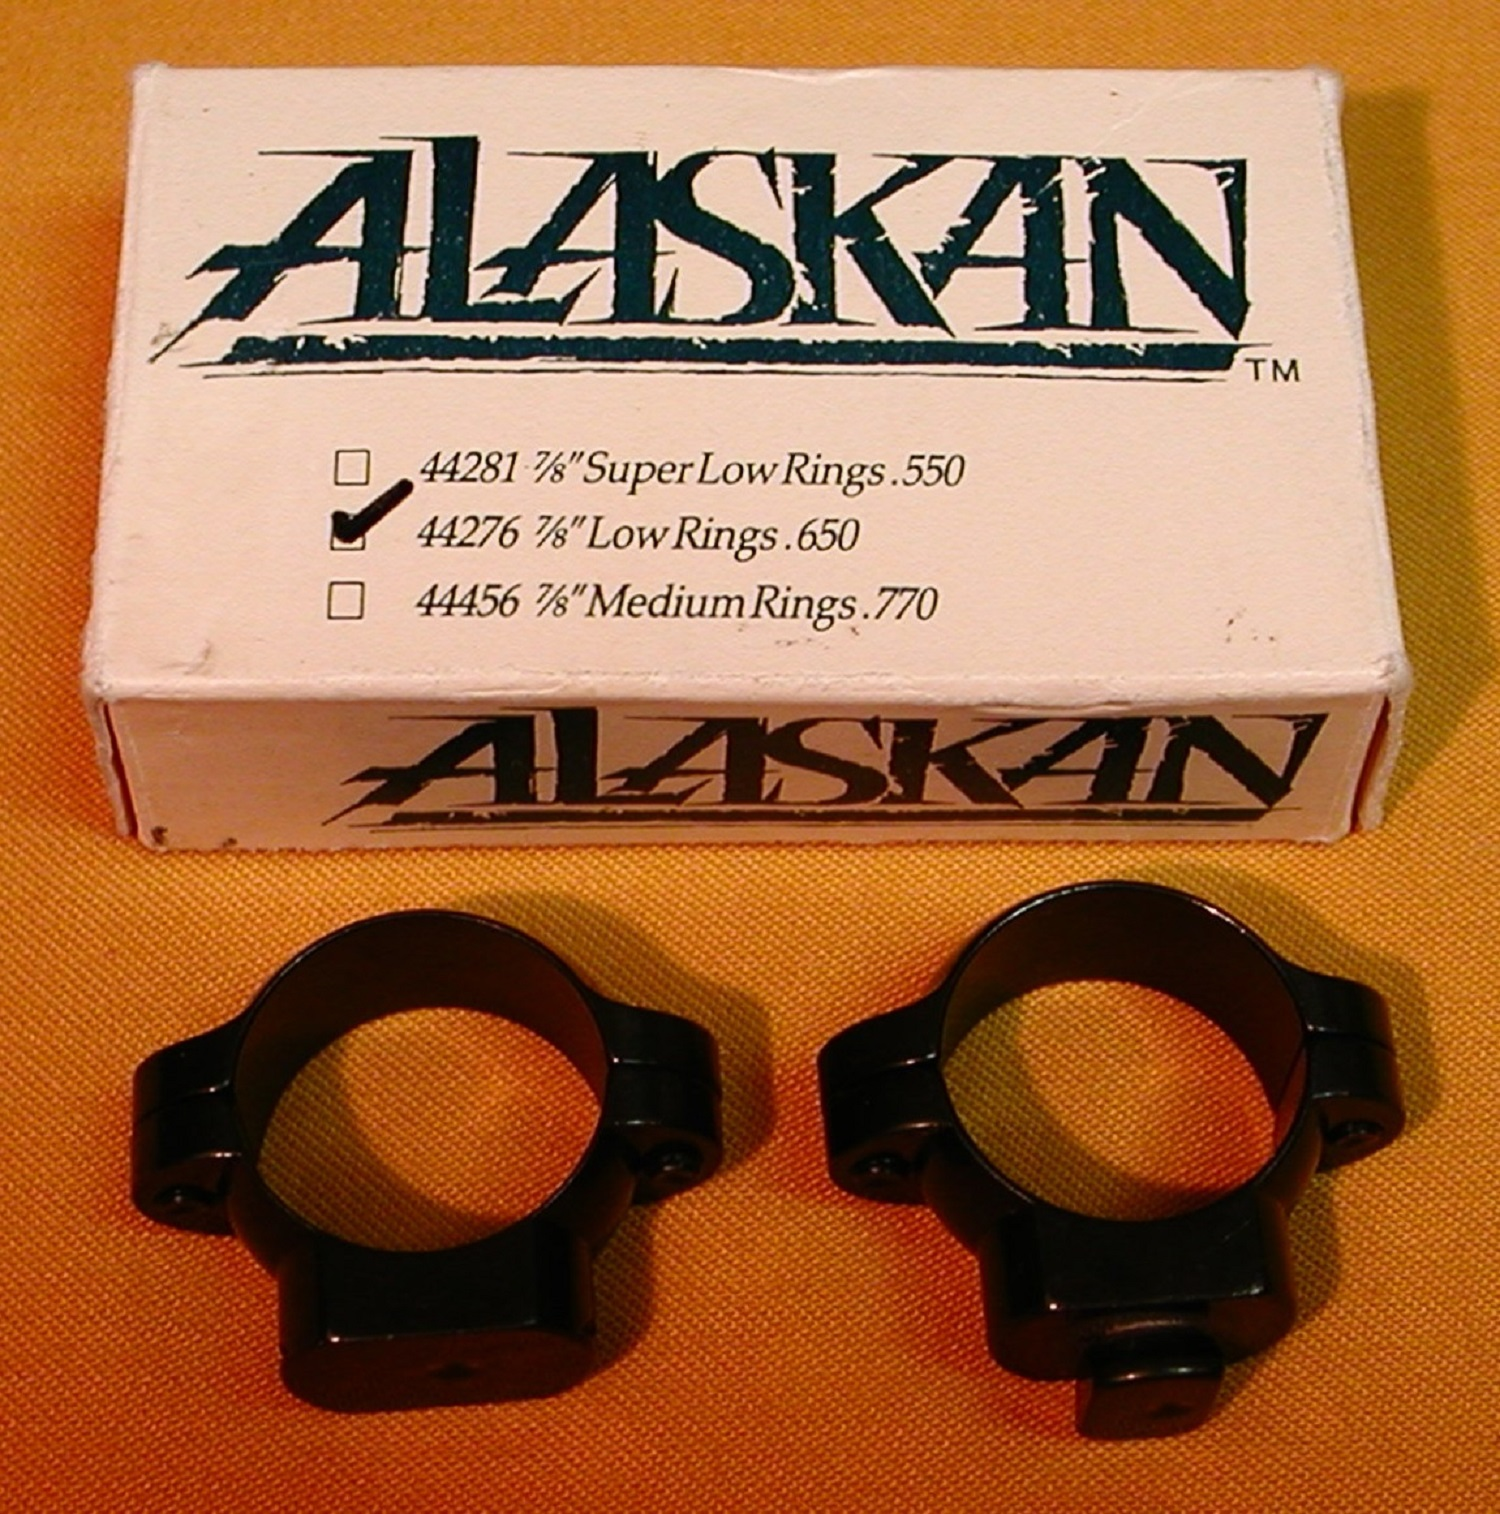 W000S100_Alaskan_Scope_Rings.jpg